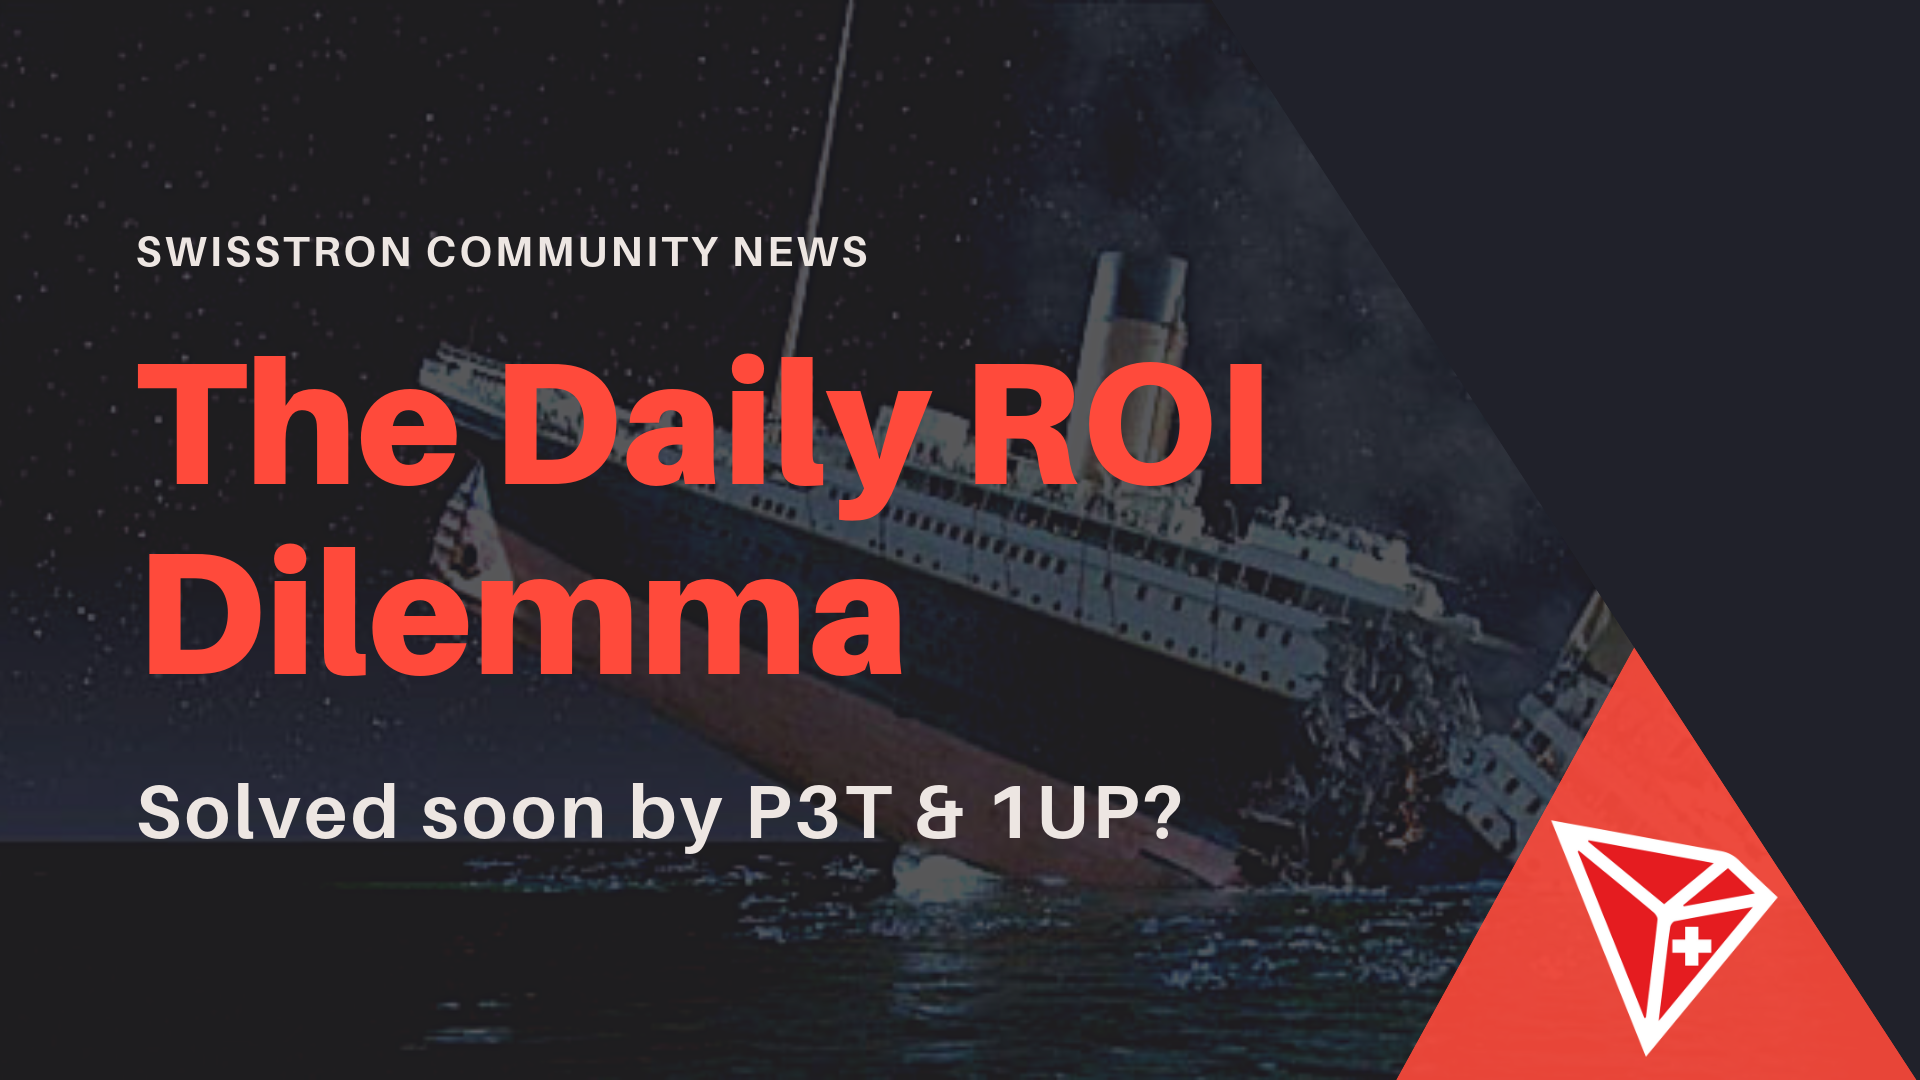 The Daily ROI Dilemma: Solved soon by P3T & 1UP?